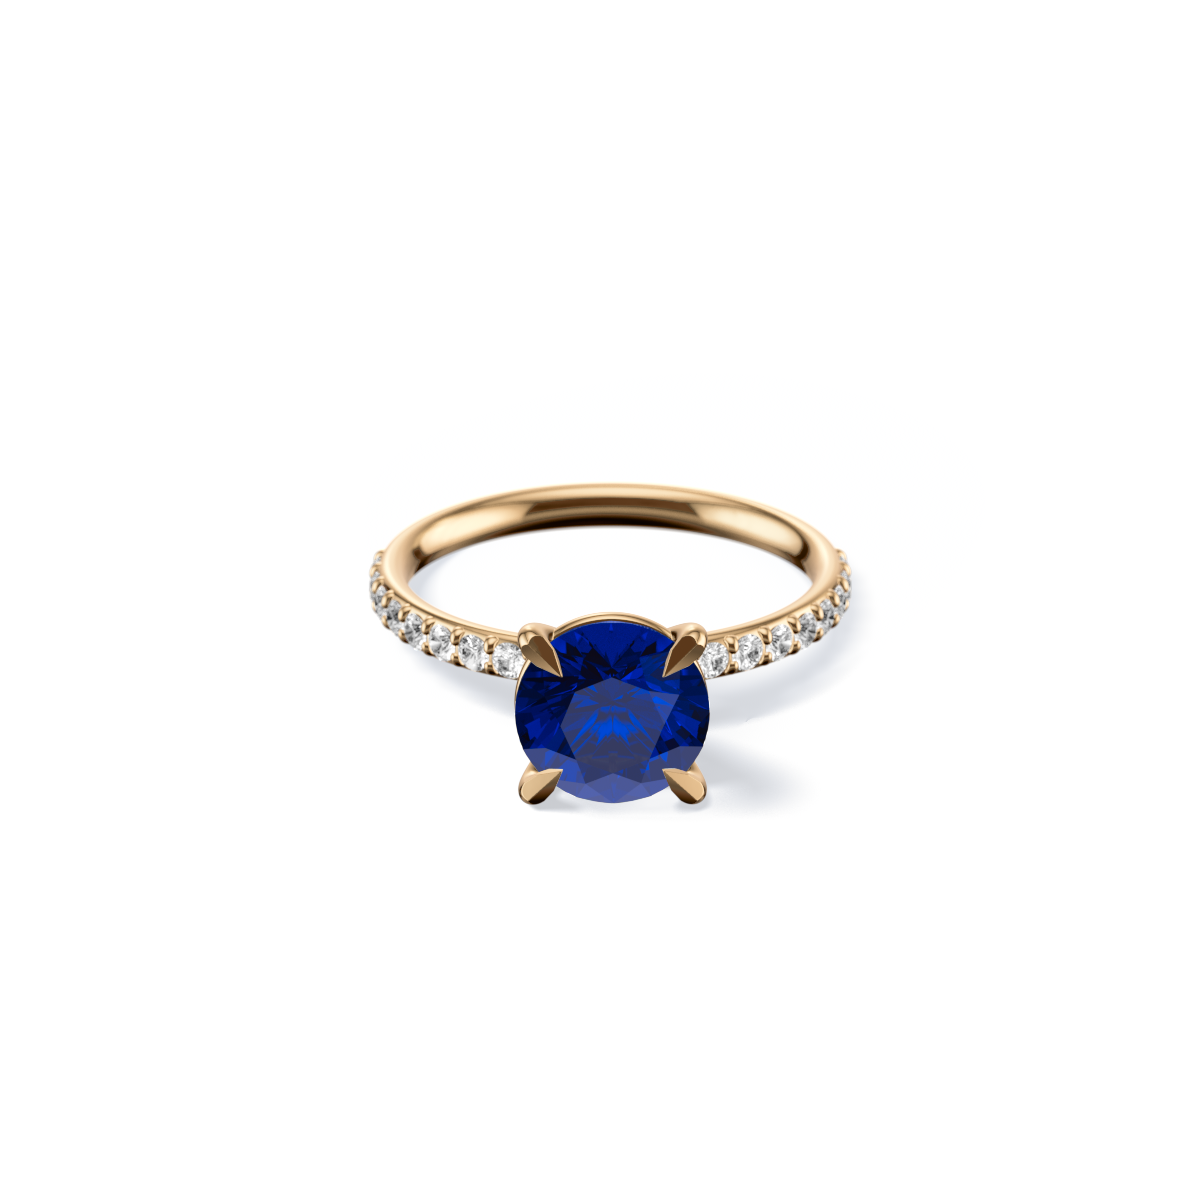 The Solitaire Pavé